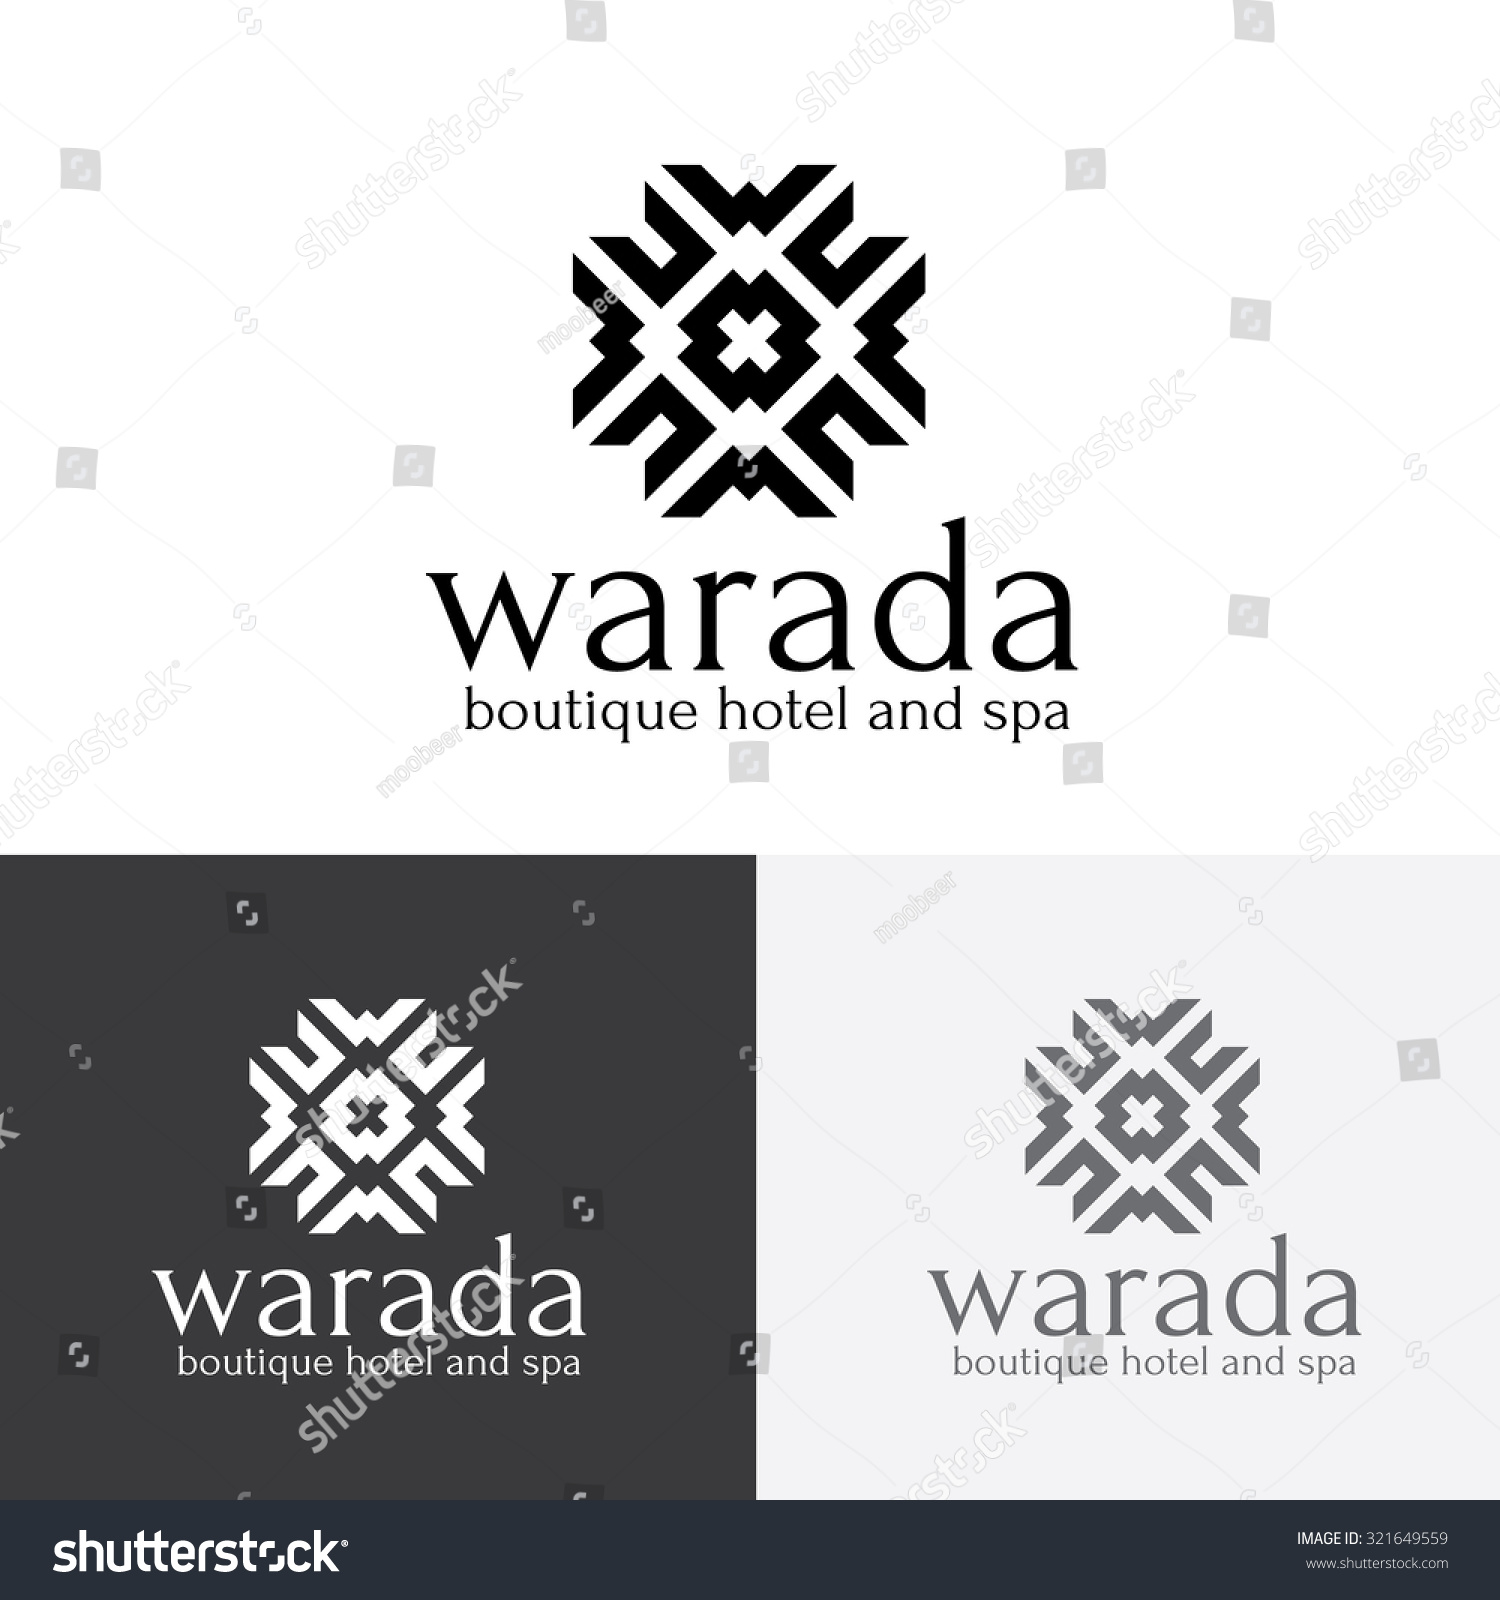 Boutique hotel logohotel logovintage logovector logo stock for Boutique hotel logo